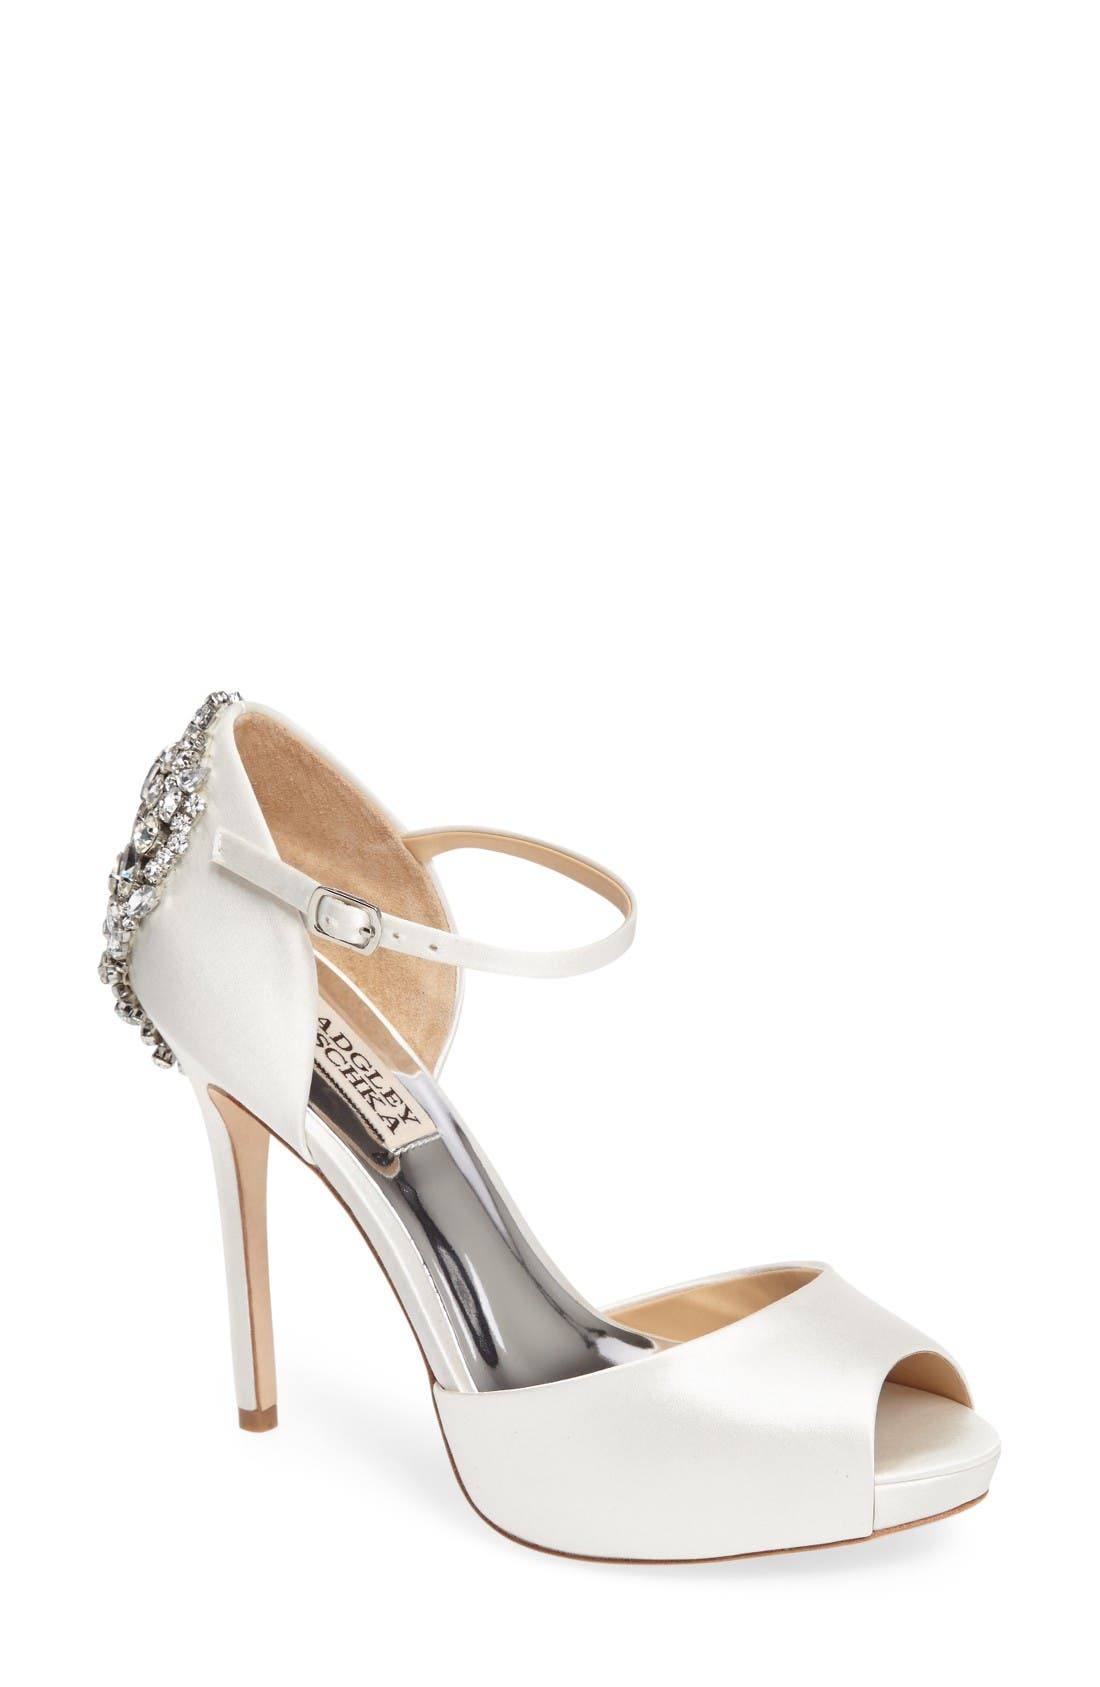 Main Image - Badgley Mischka 'Dawn' Crystal Back d'Orsay Pump (Women)